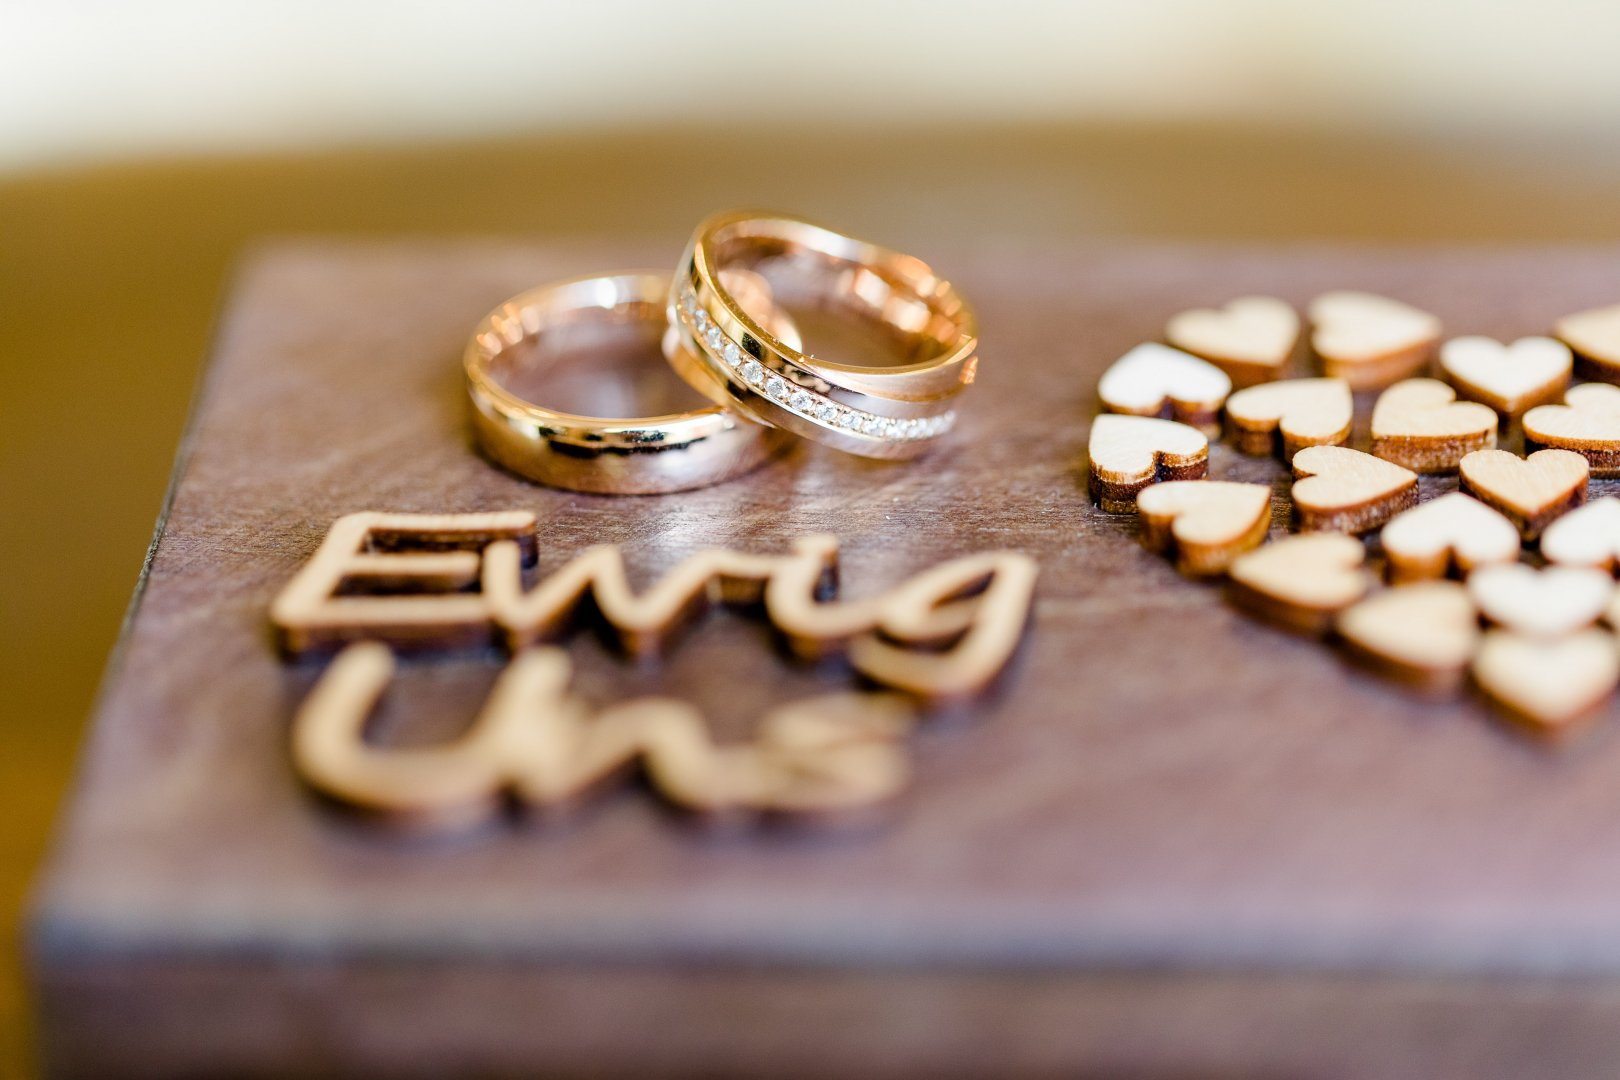 Metal Font Photography Fashion accessory Gold Wedding ring Macro photography Love Jewellery Finger Ring Heart Wedding ceremony supply Engagement